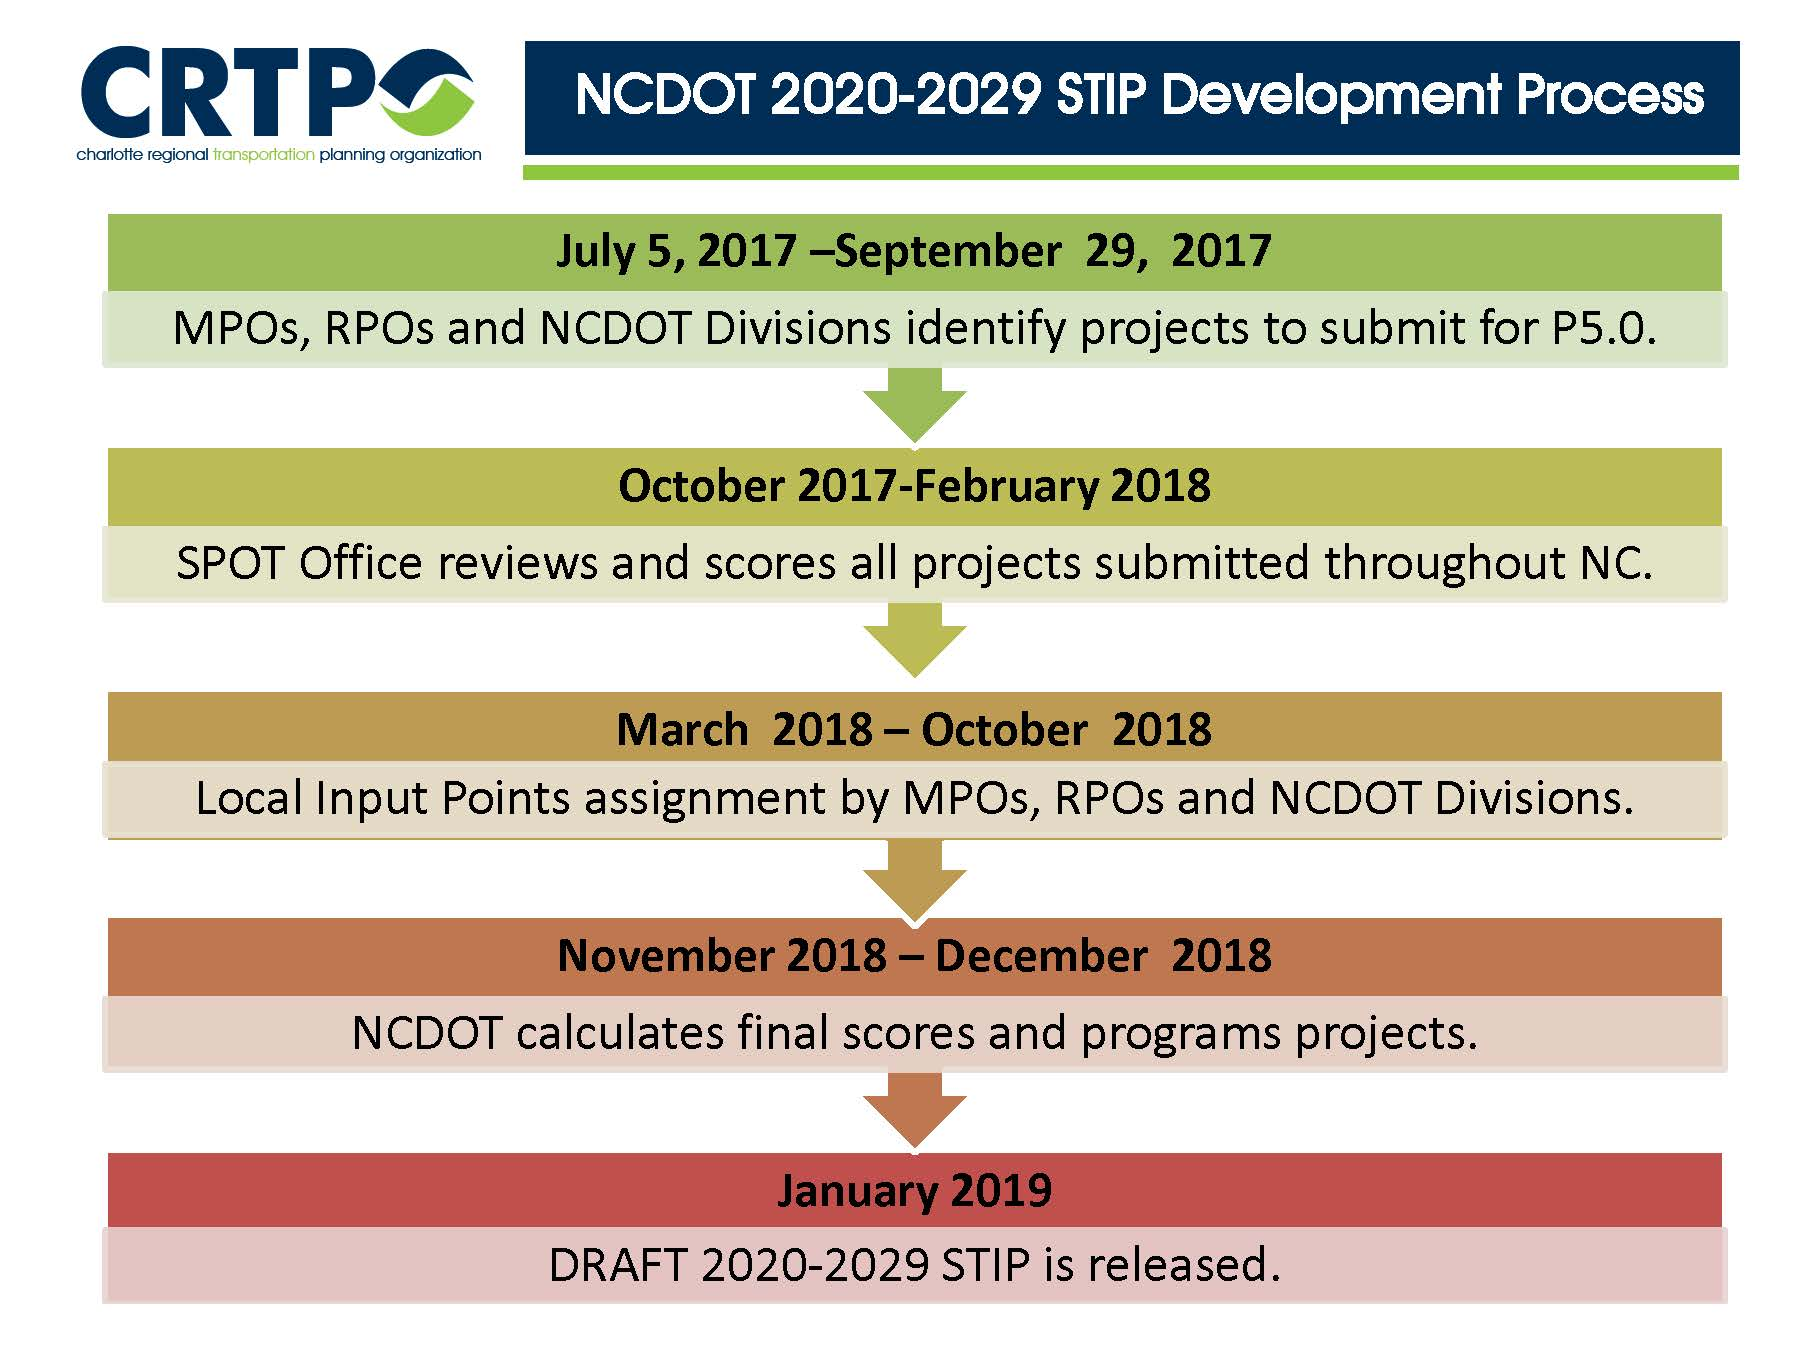 NCDOT 2020-2029 STIP Development Process